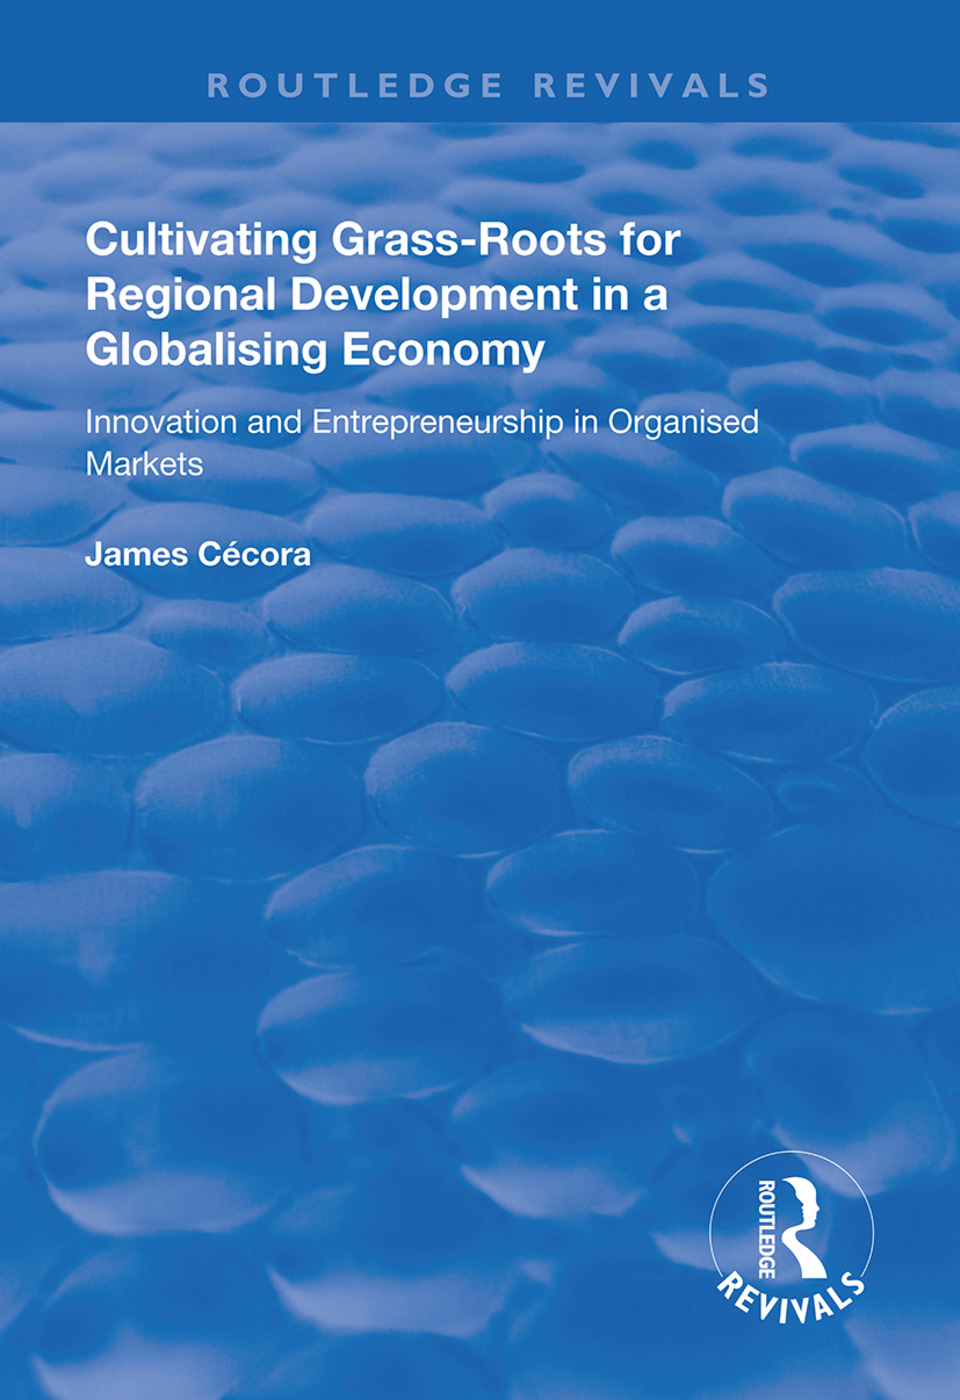 Cultivating Grass-Roots for Regional Development in a Globalising Economy: Innovation and Entrepreneurship in Organised Markets book cover